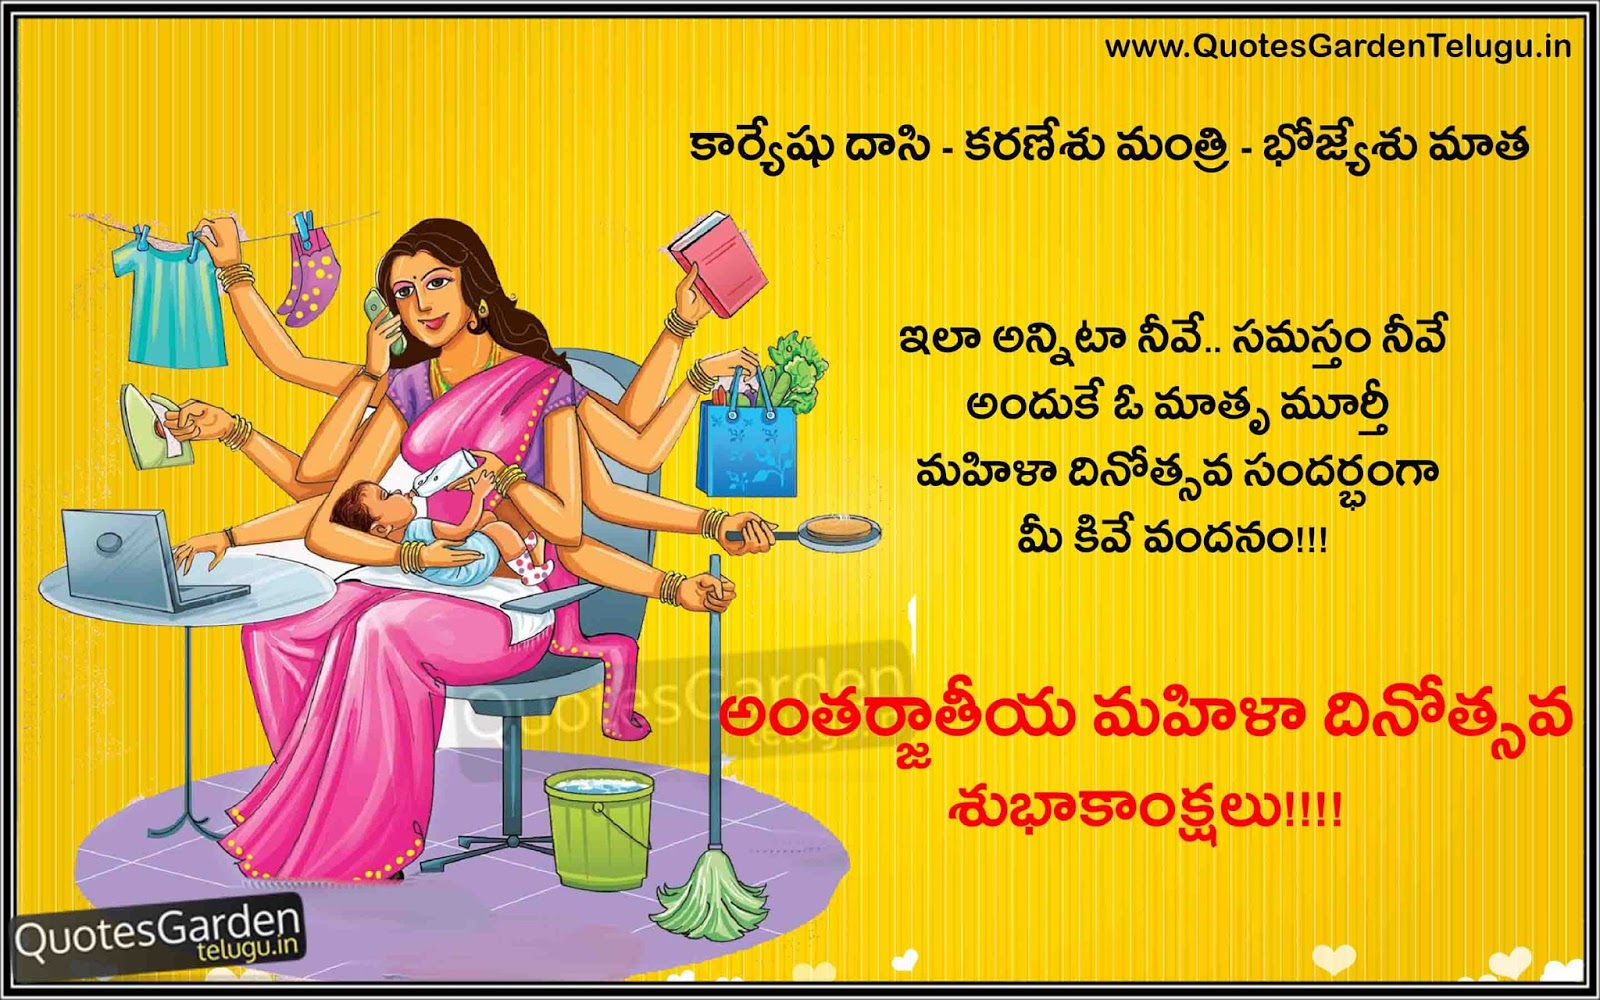 International Womens Day Quotations And Greetings In Telugu